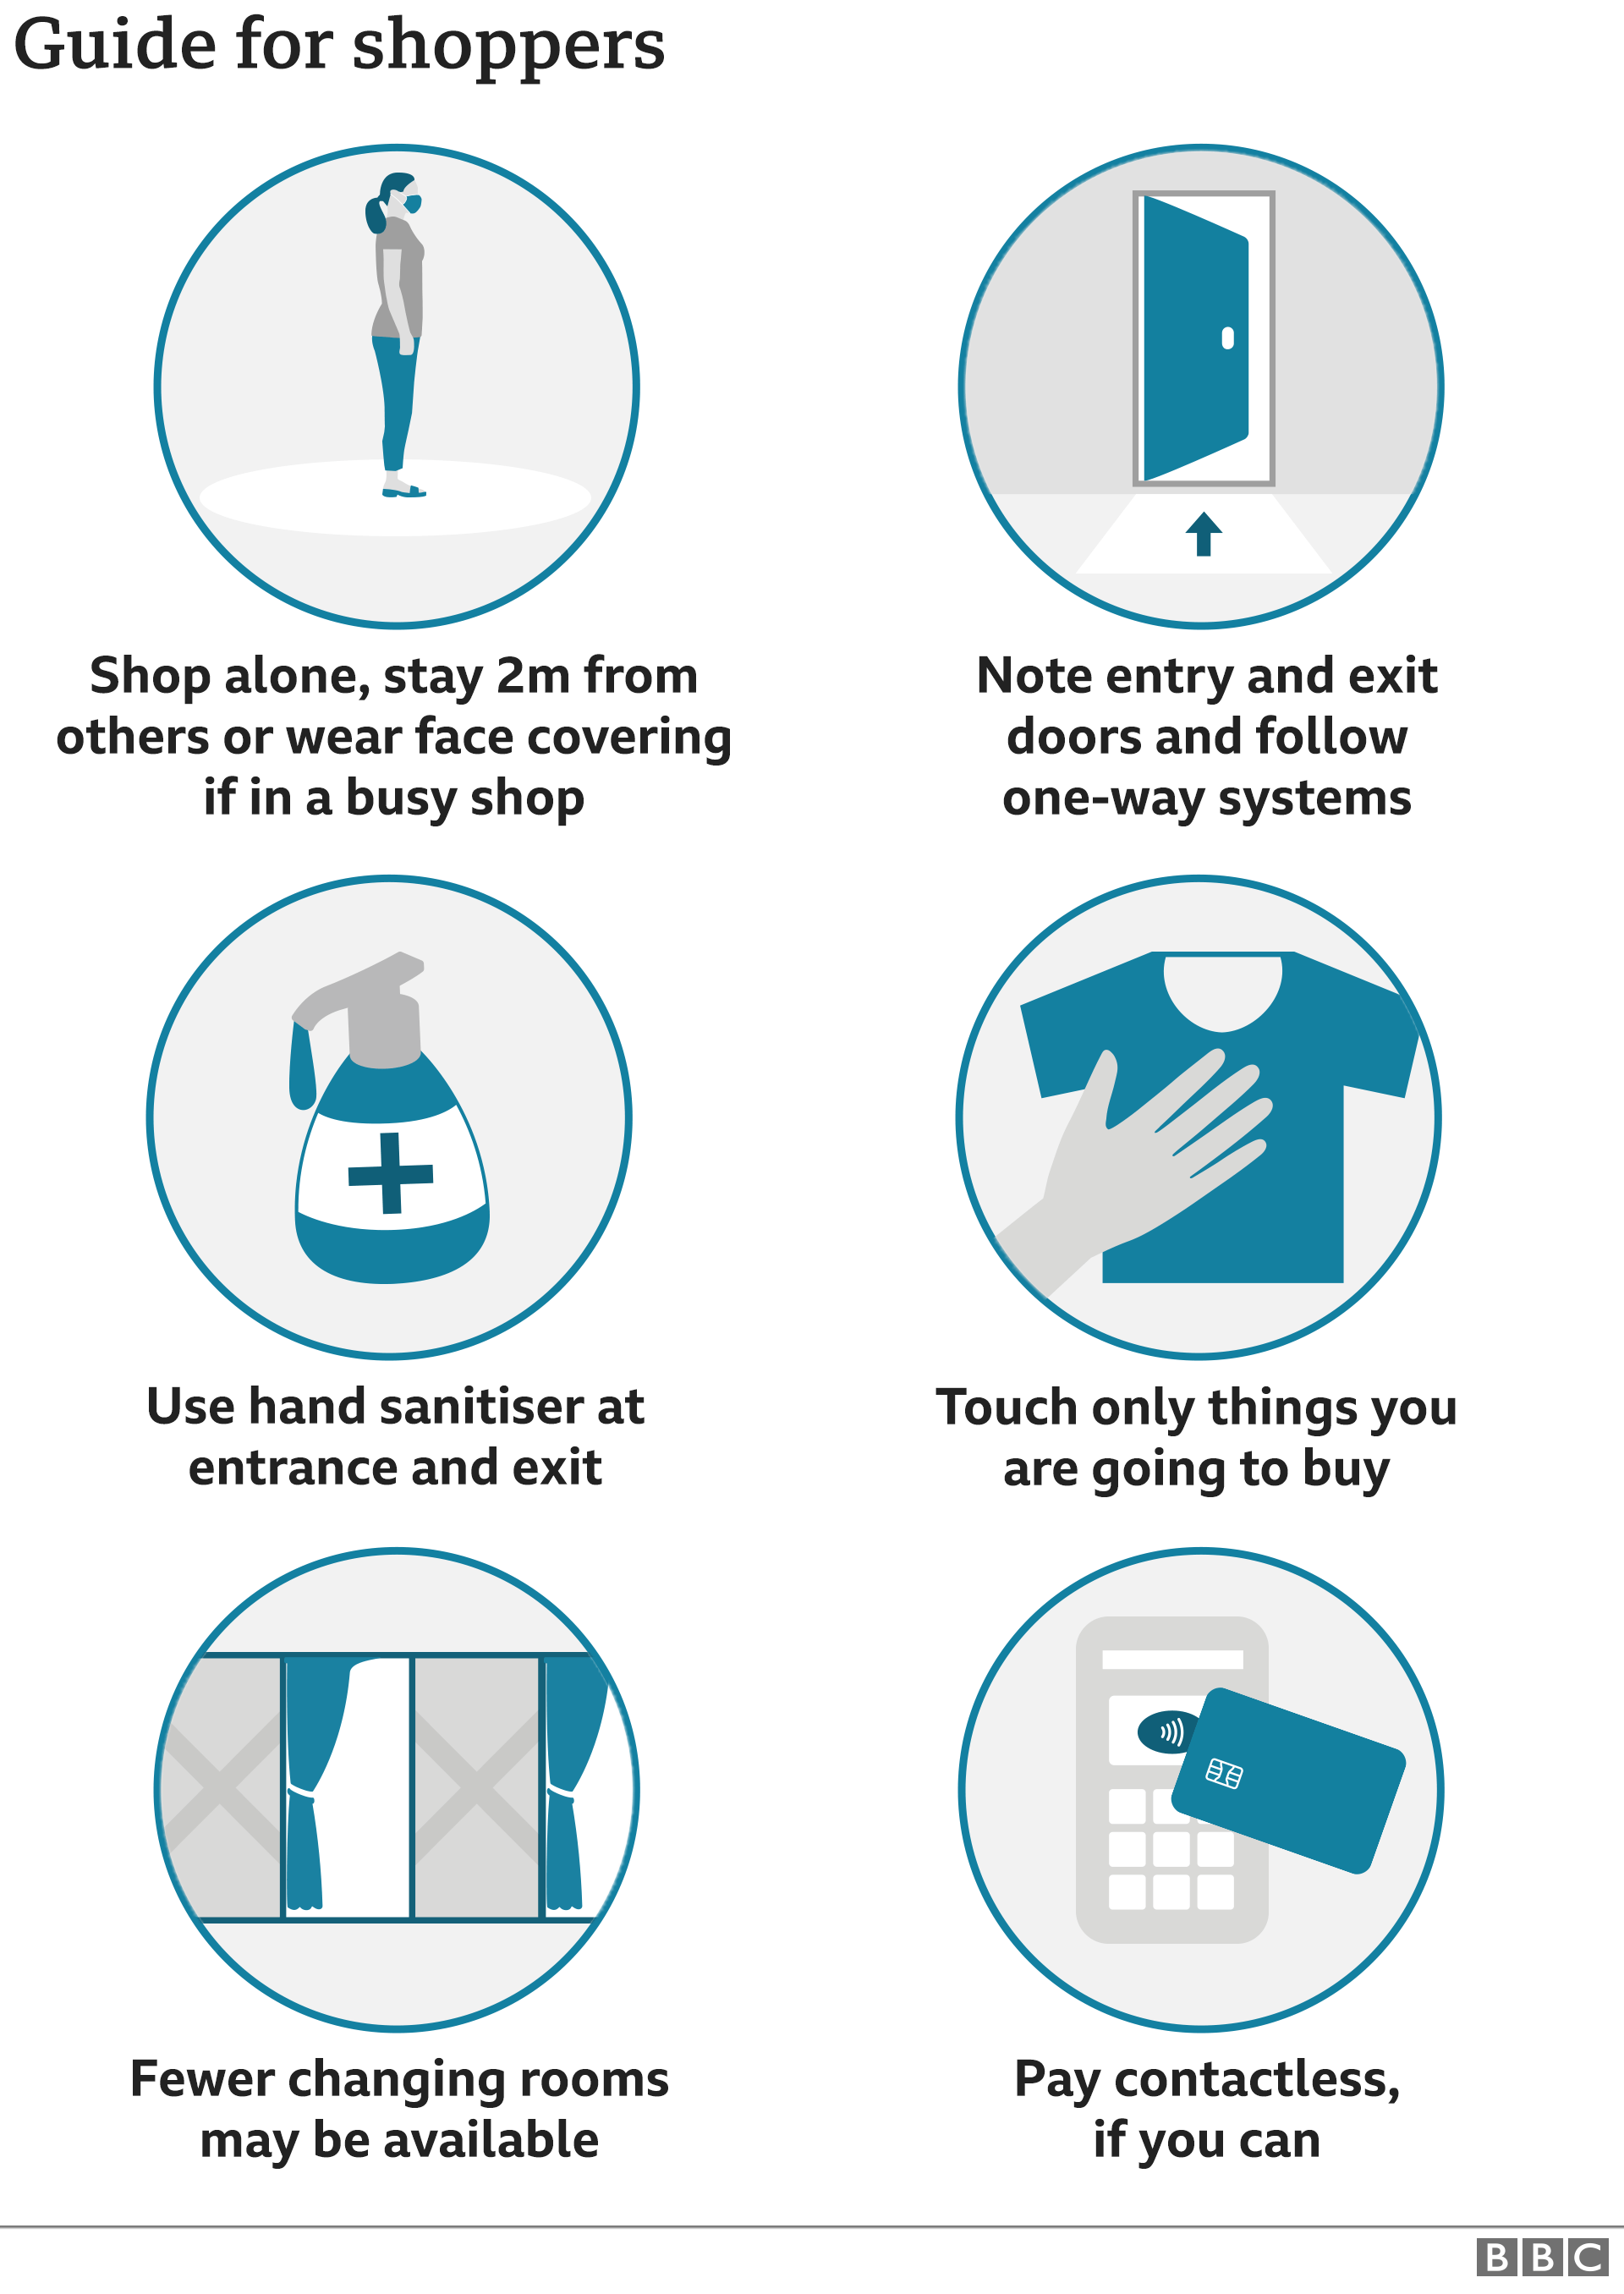 Guidance for shoppers